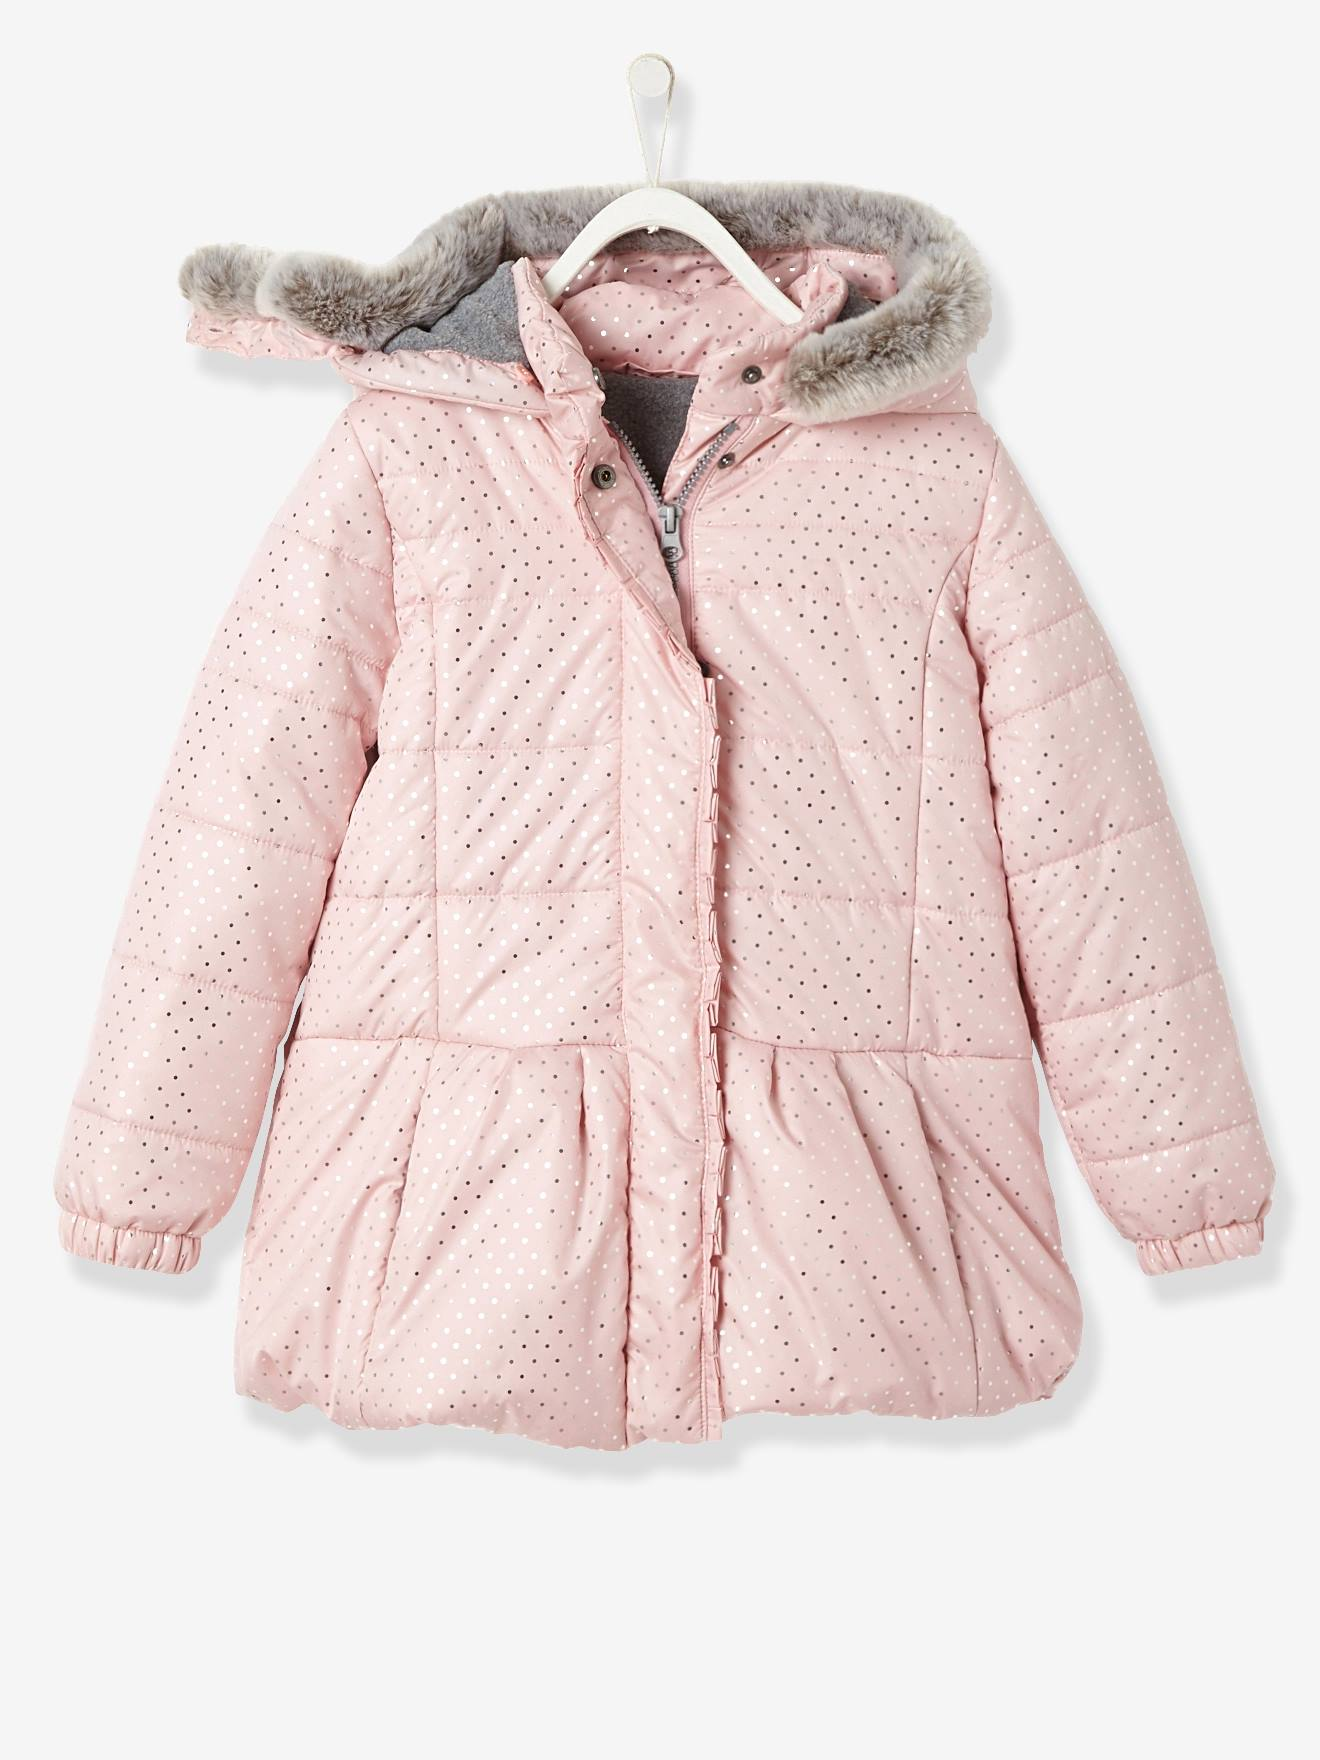 71eb4a922 Girls  Printed Hooded Padded Jacket - pink light all over printed